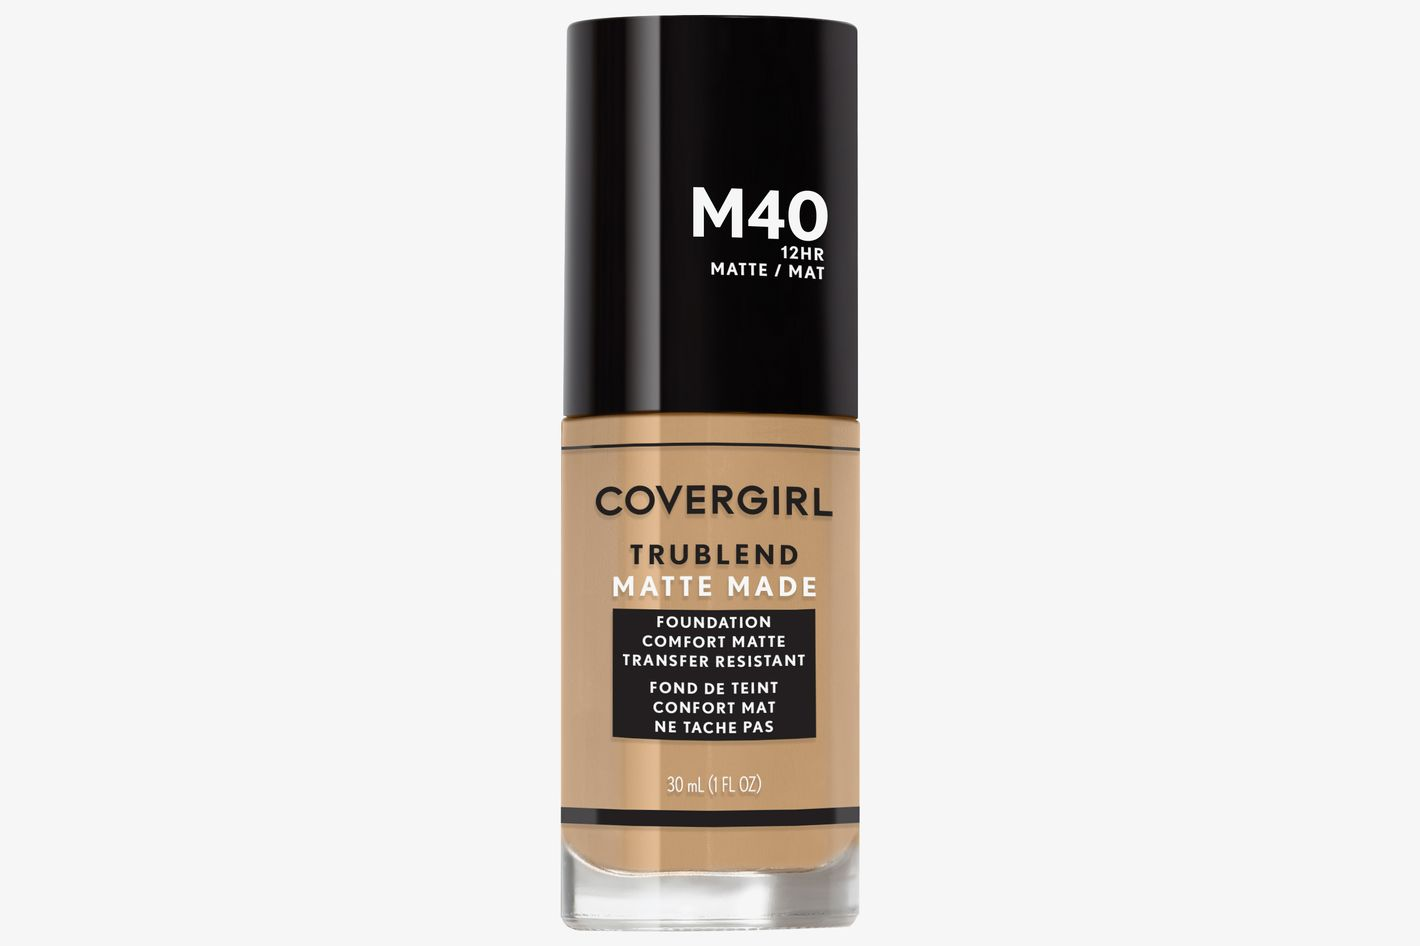 TruBlend Matte Made Liquid Foundation in M40